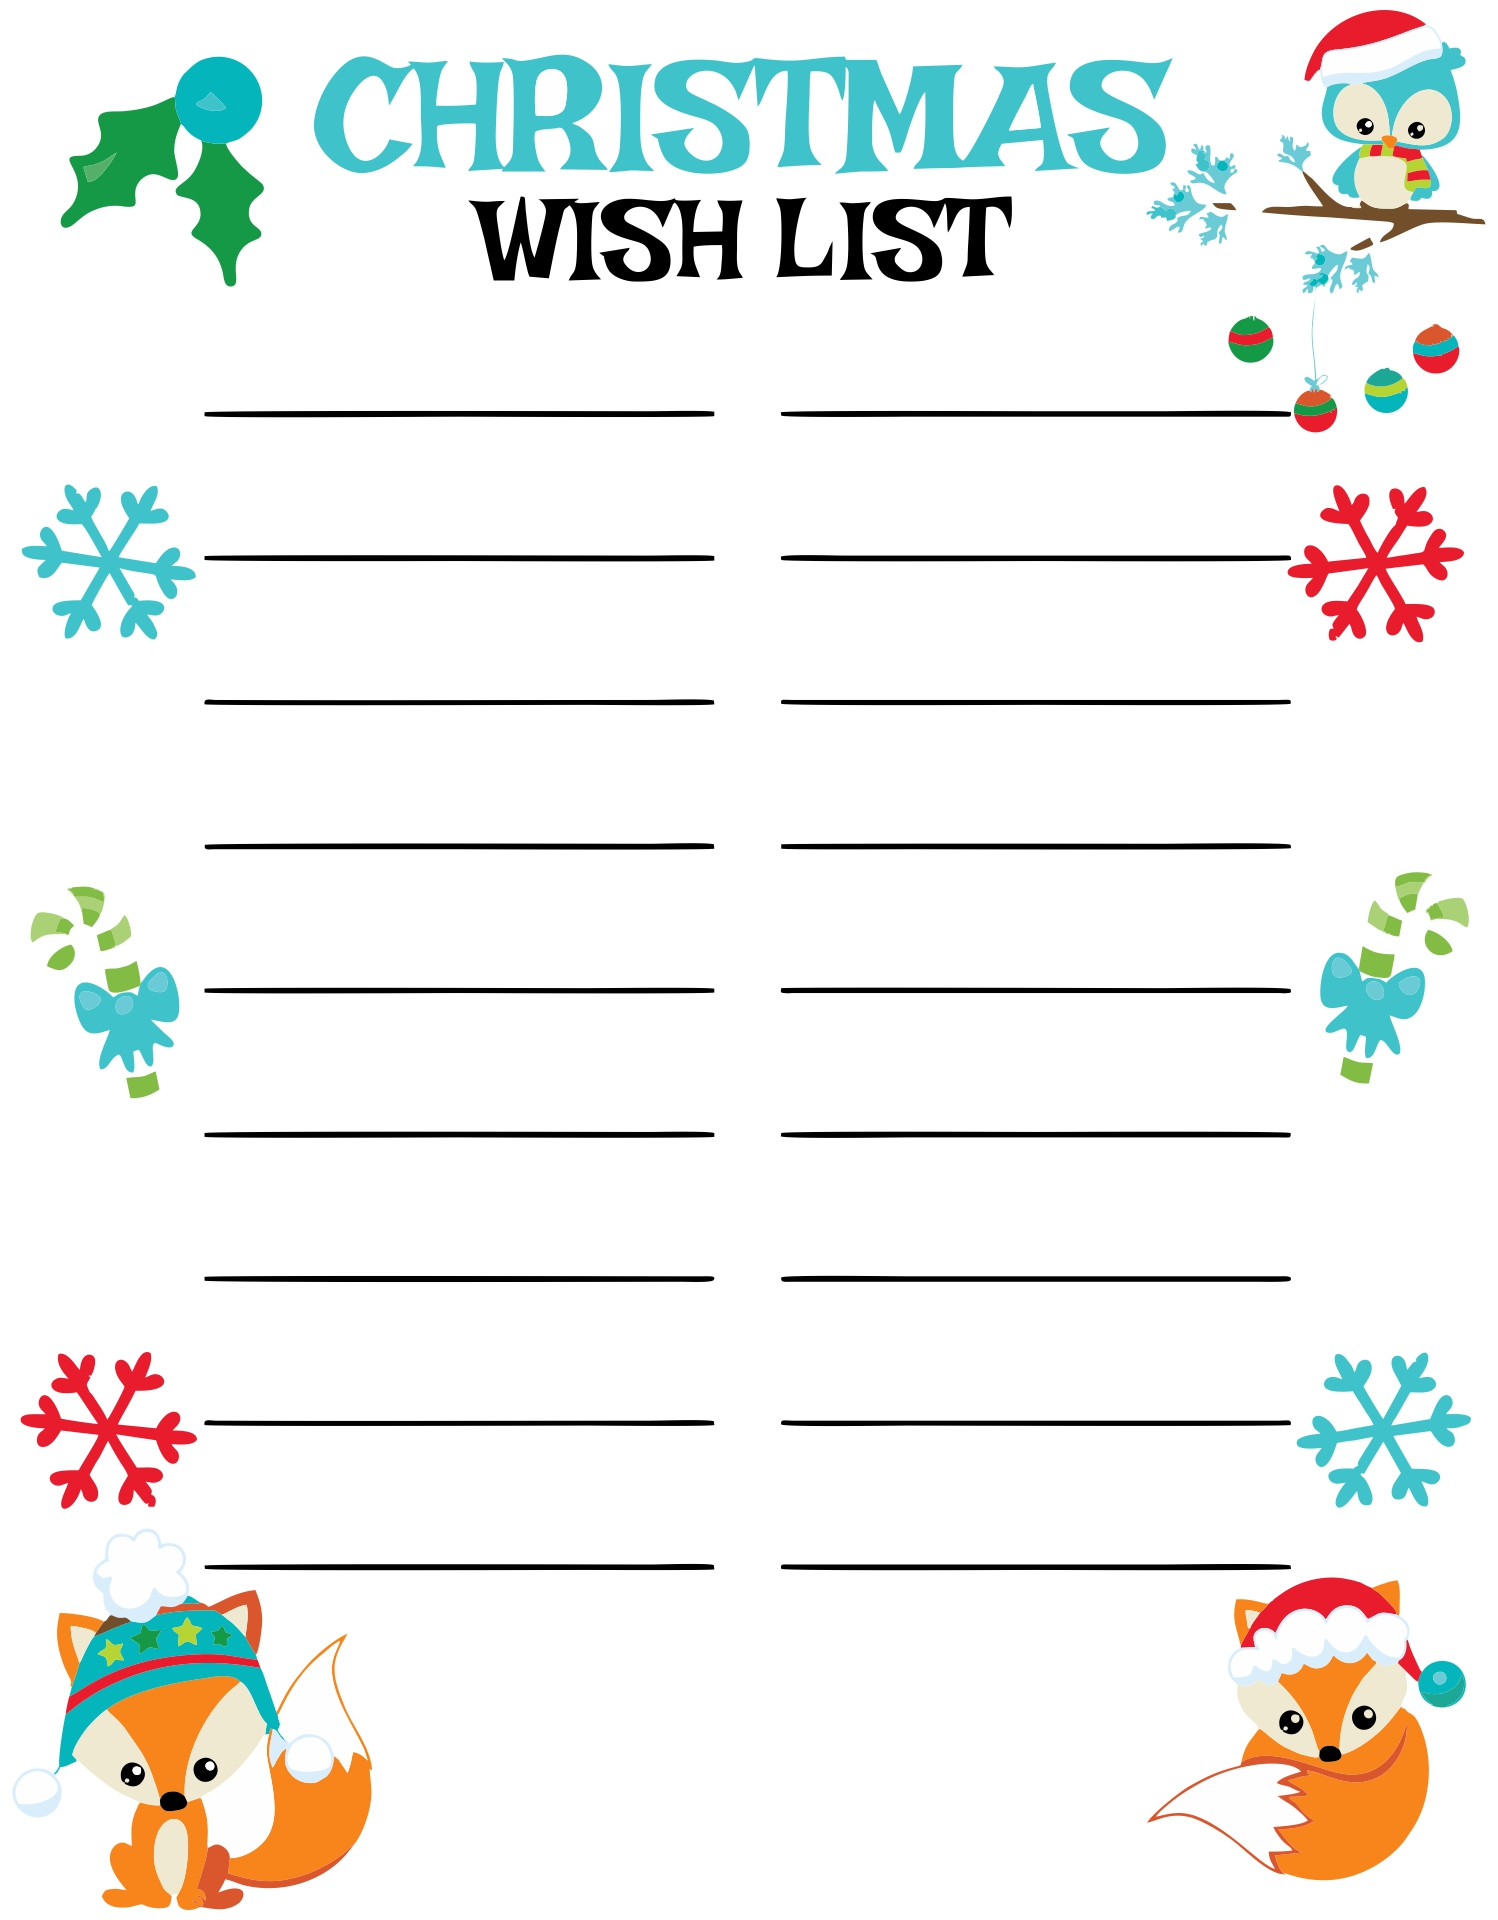 Blank Christmas Wish List Printable